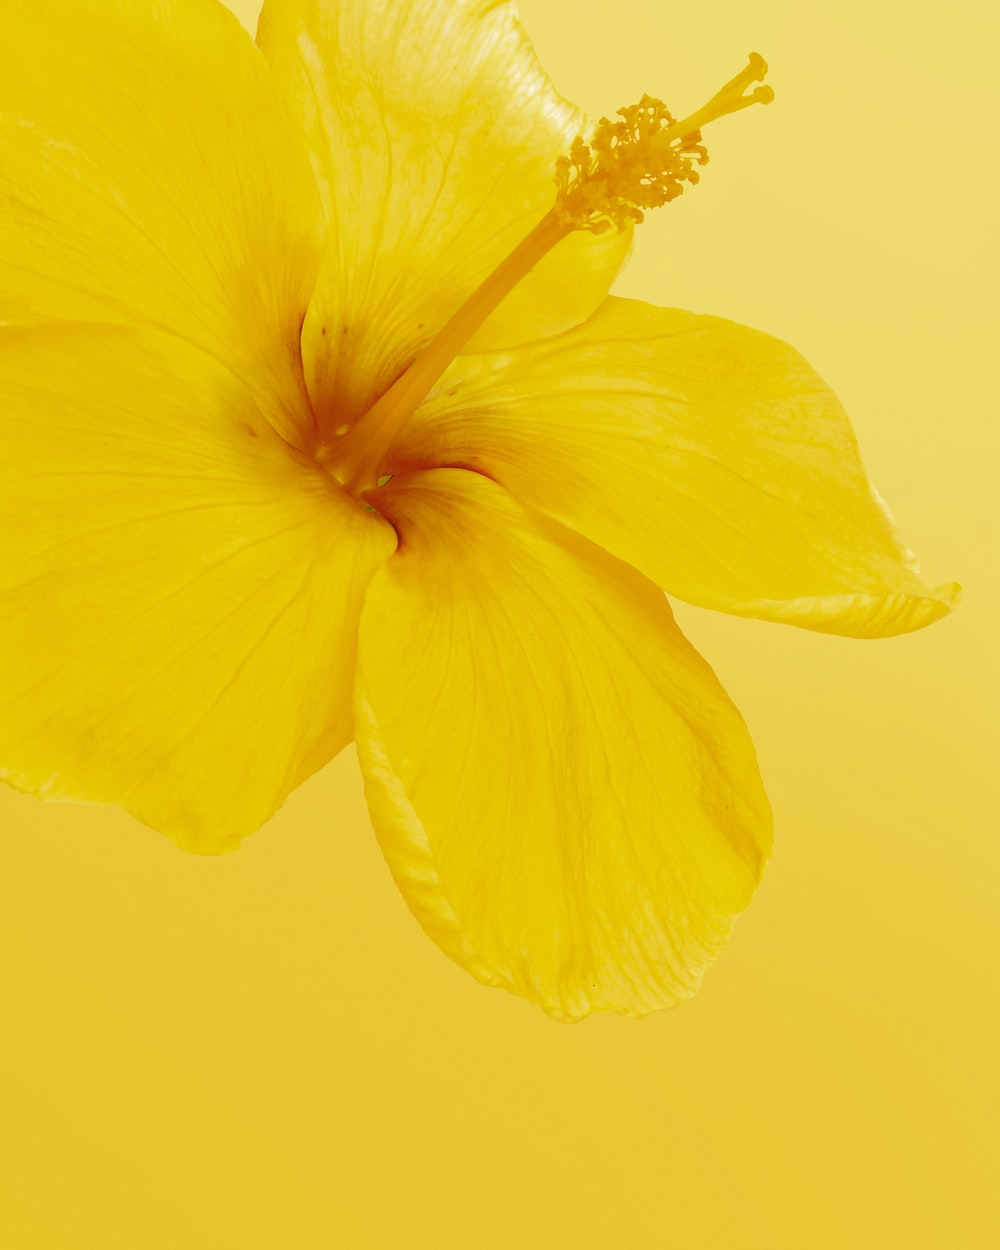 yellow flower with yellow background